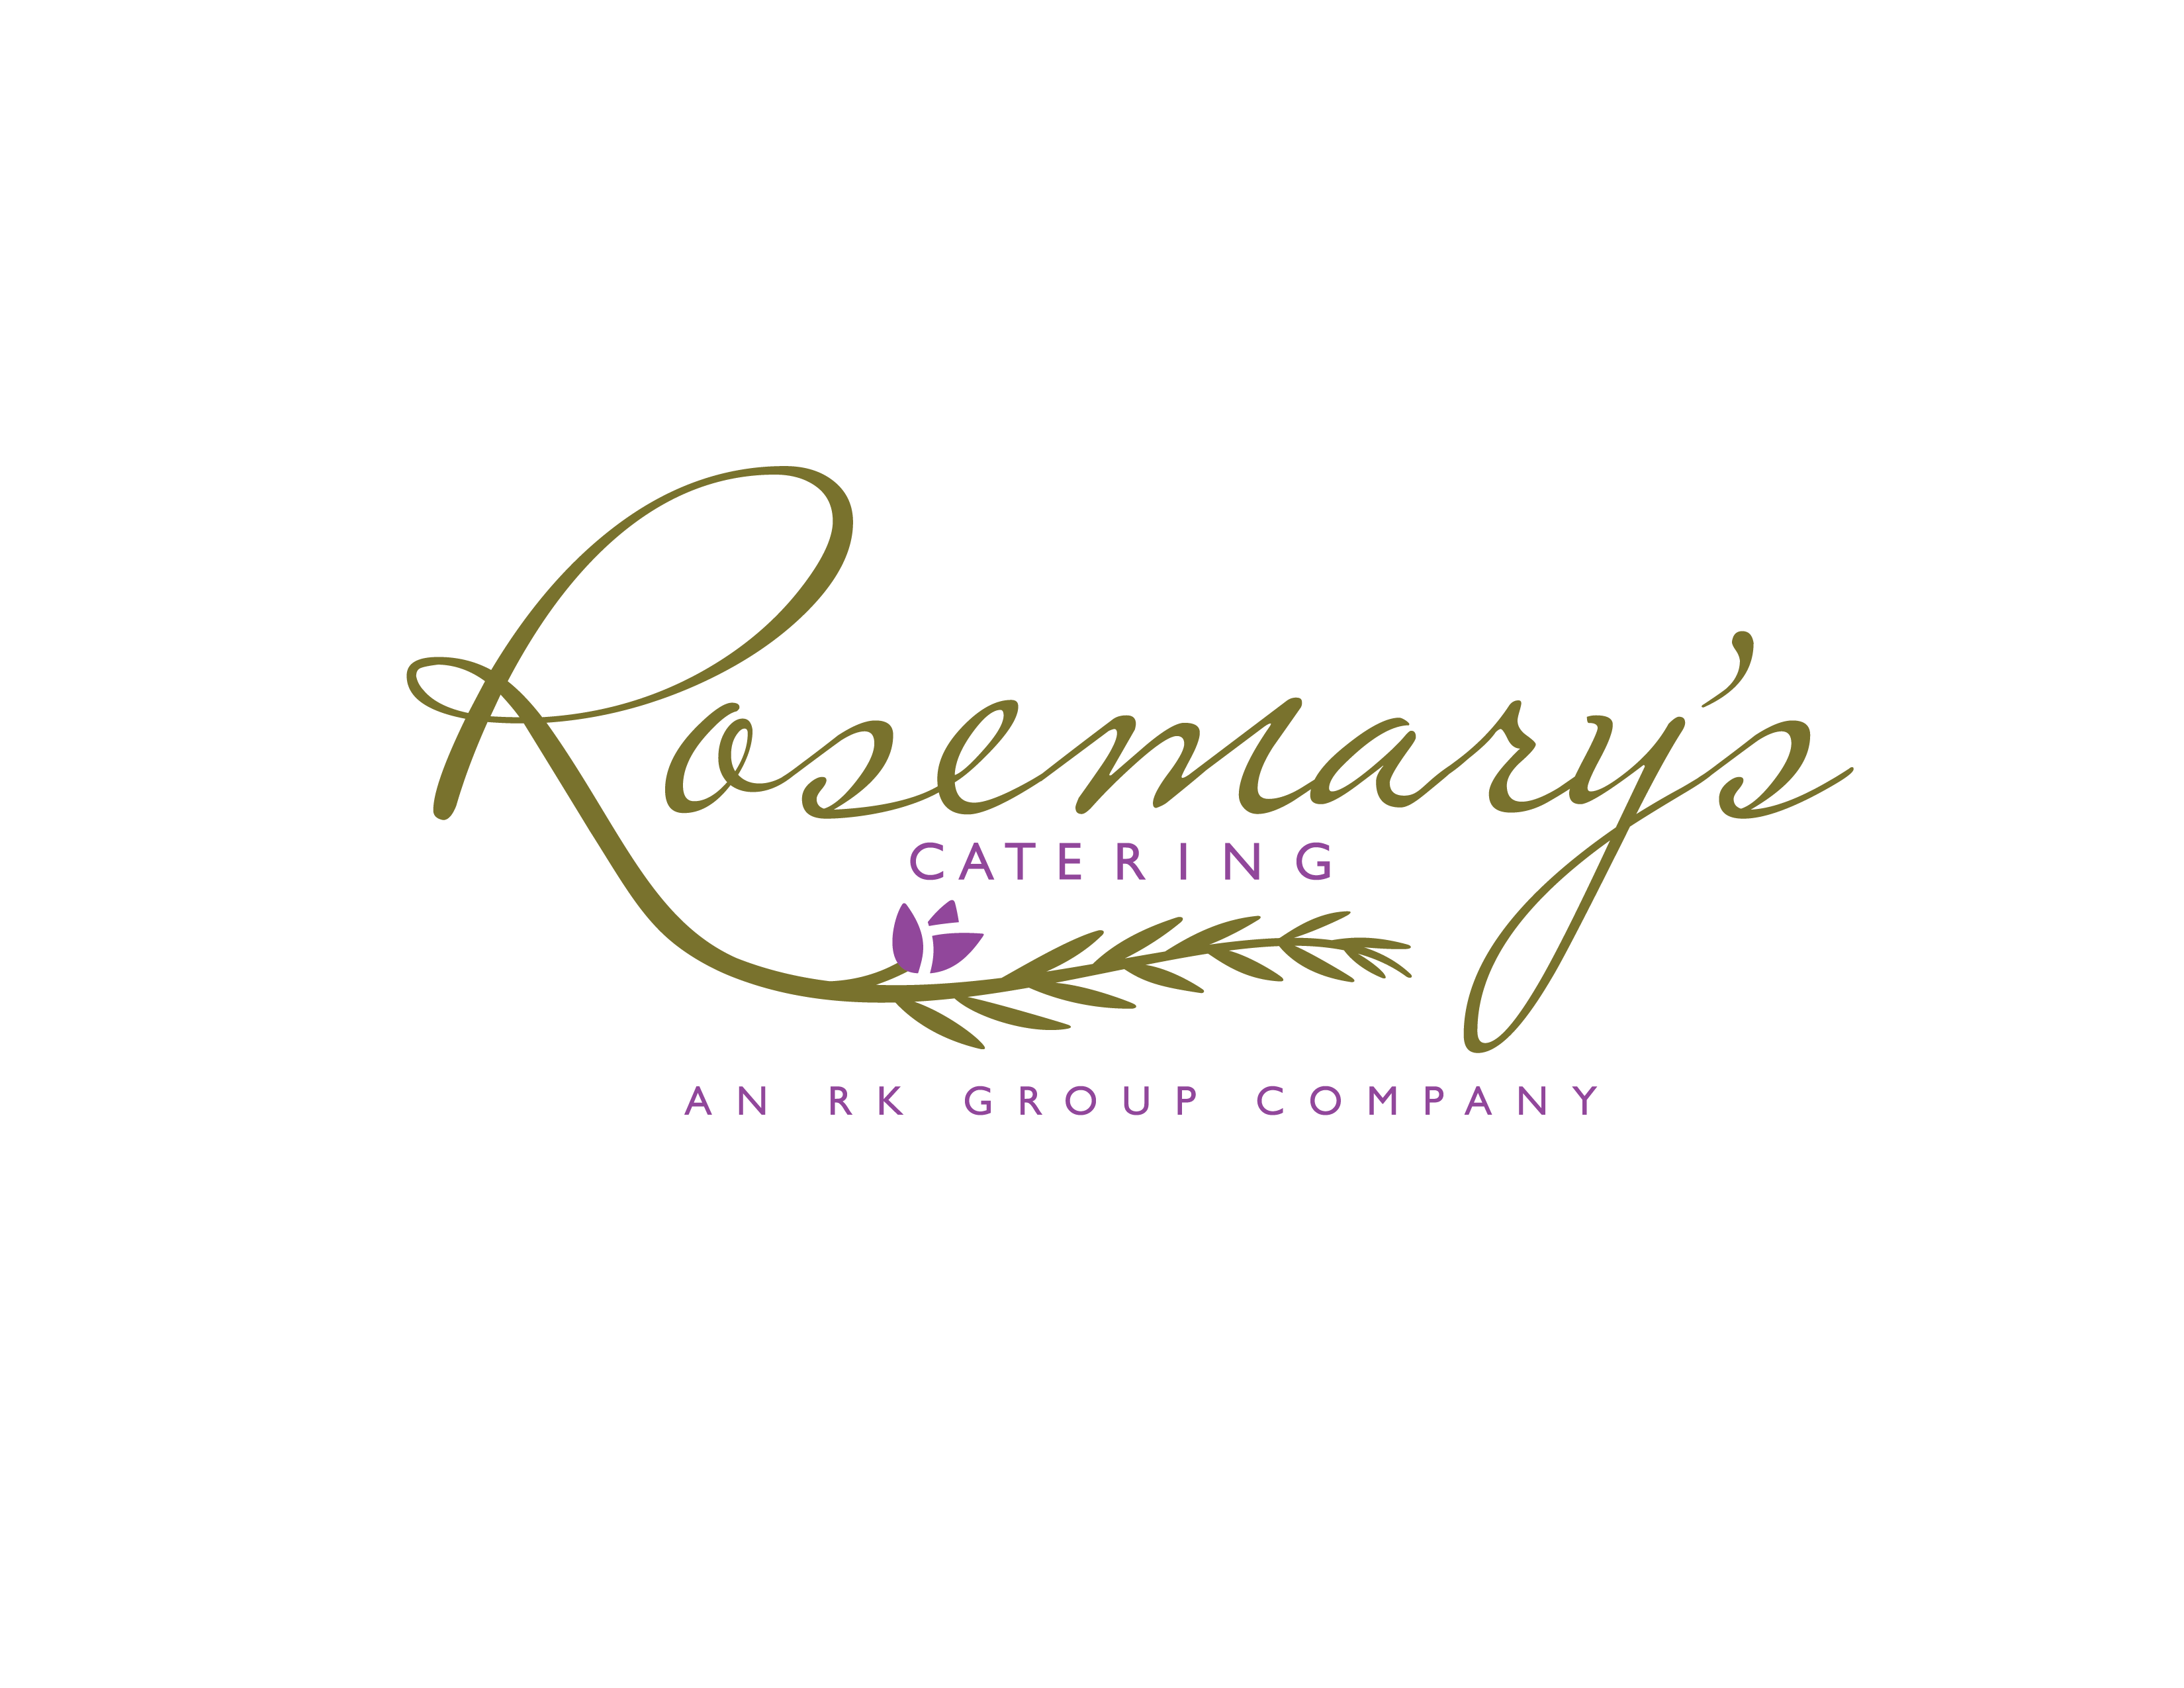 Rosemary's Catering - Austin Wedding Catering